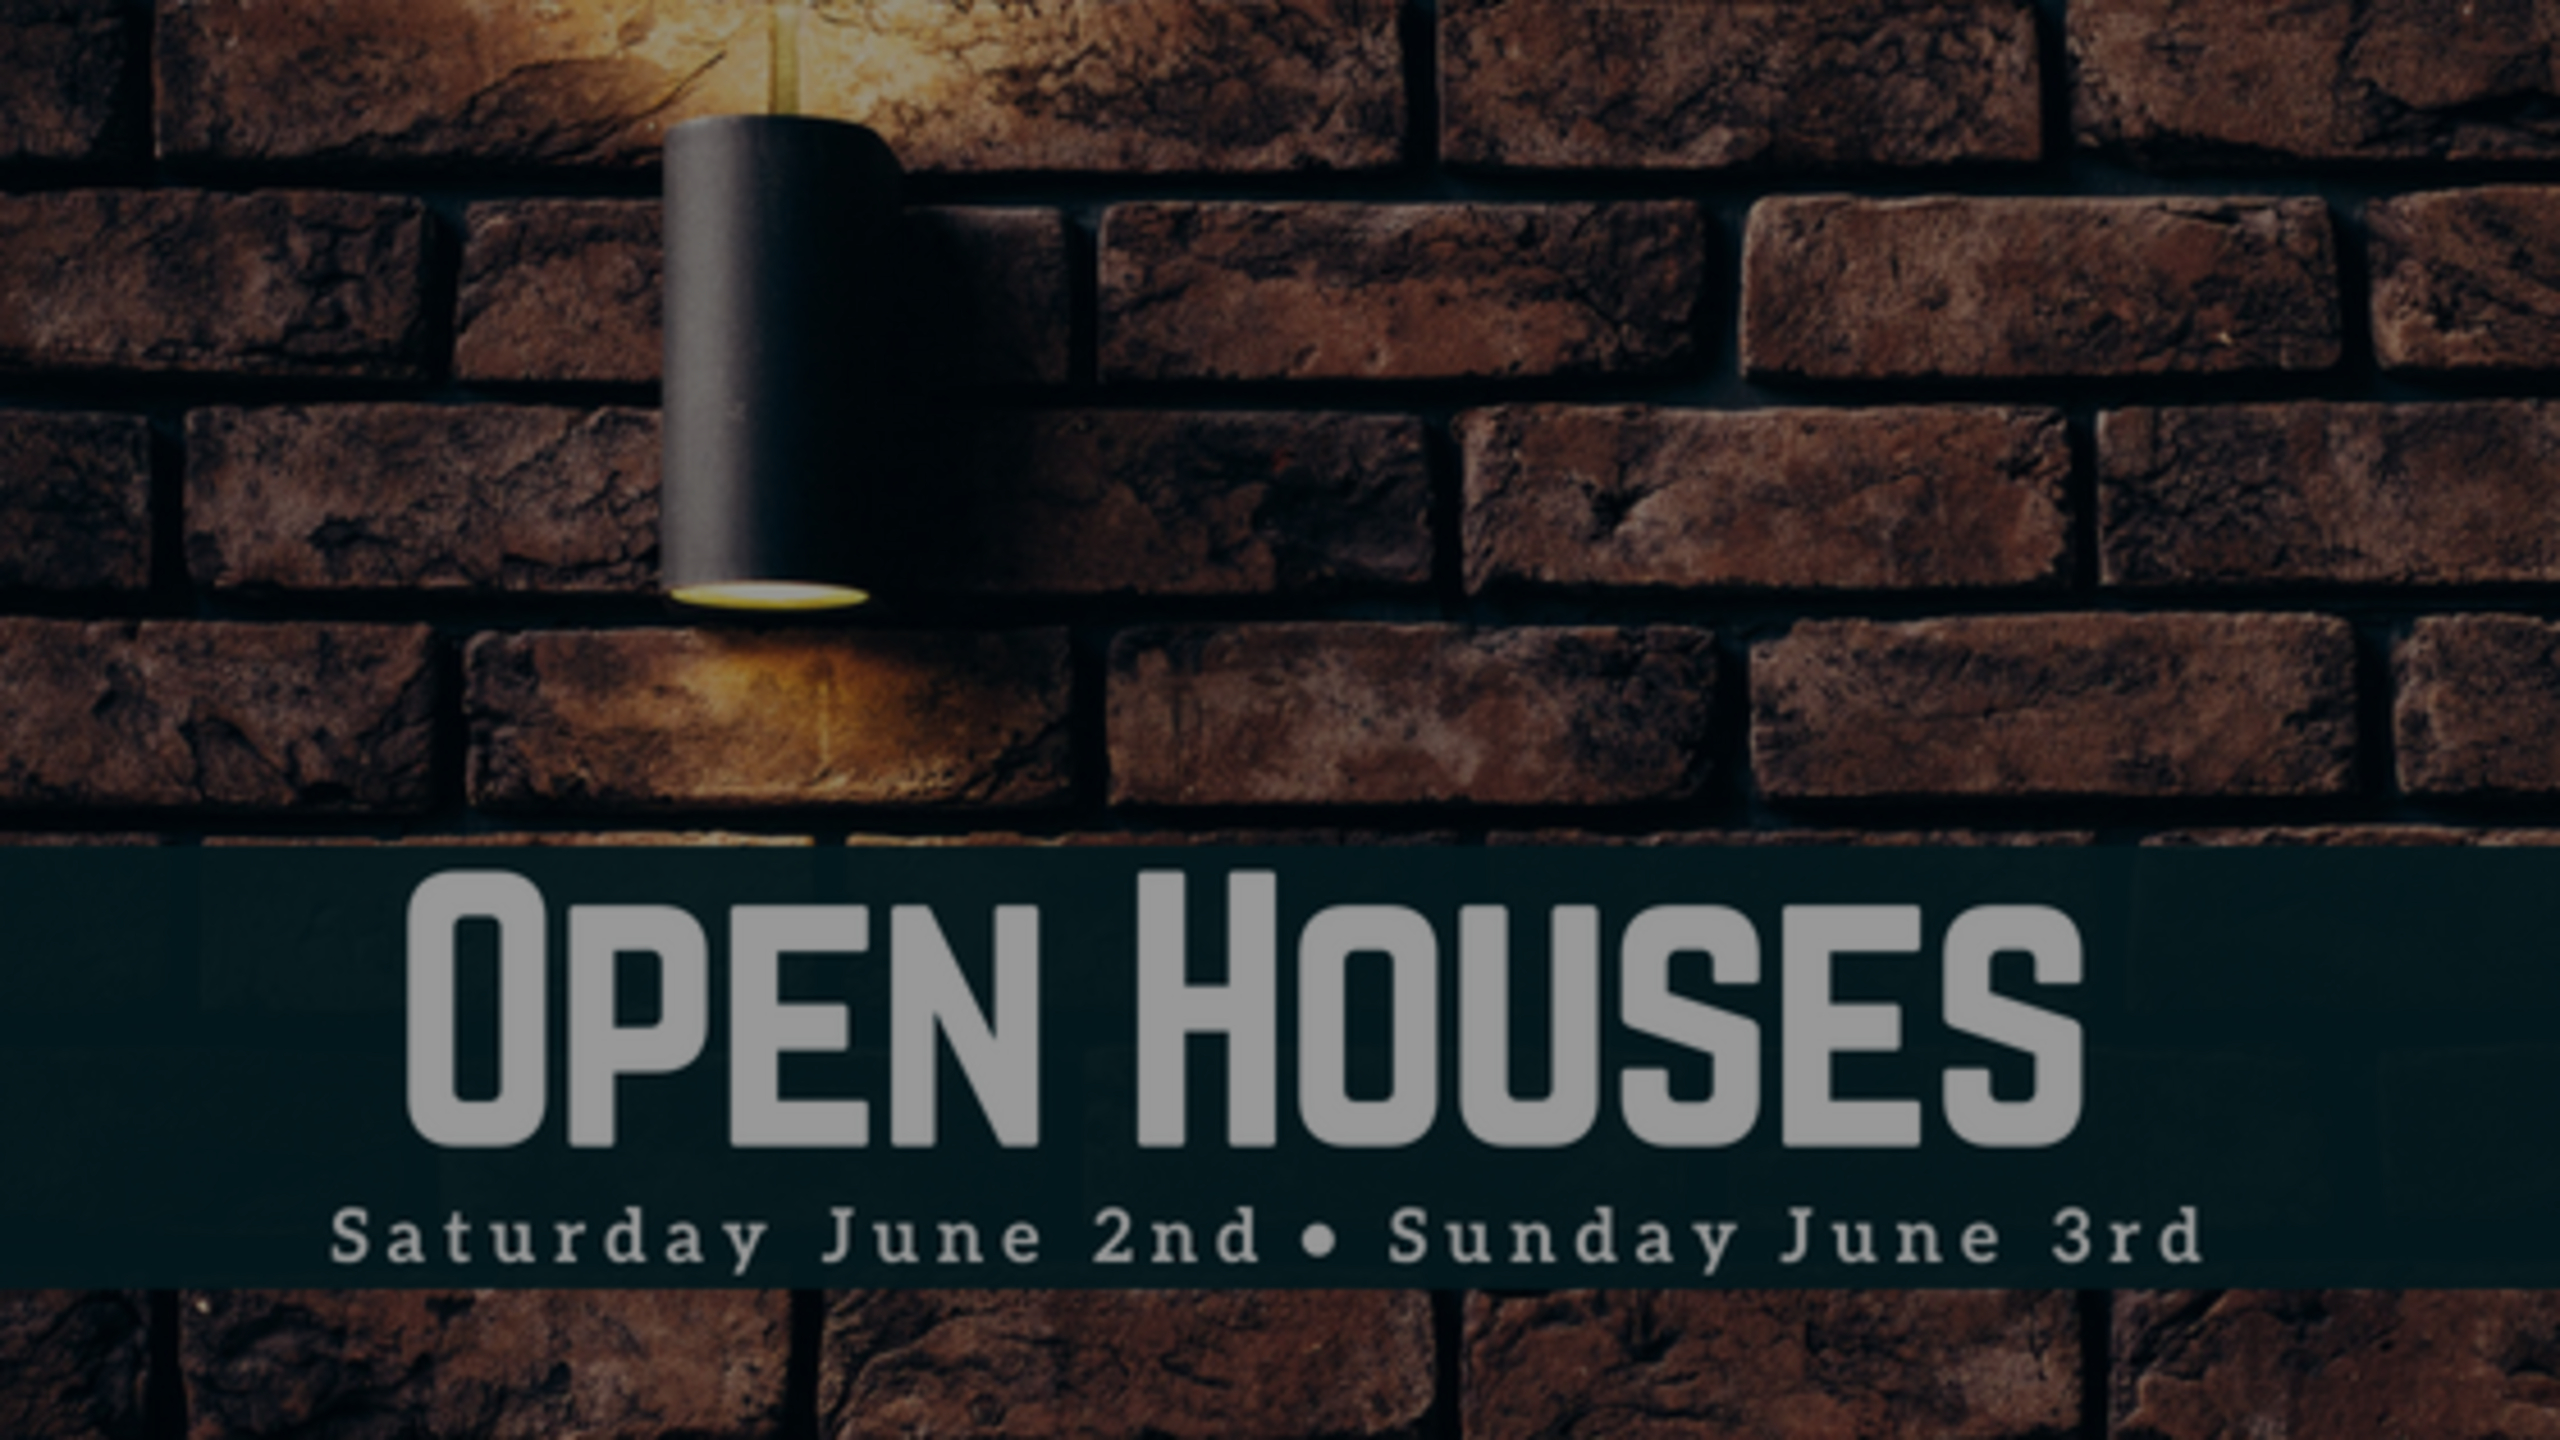 Our Open Houses: Weekend of 6/2 + 6/3